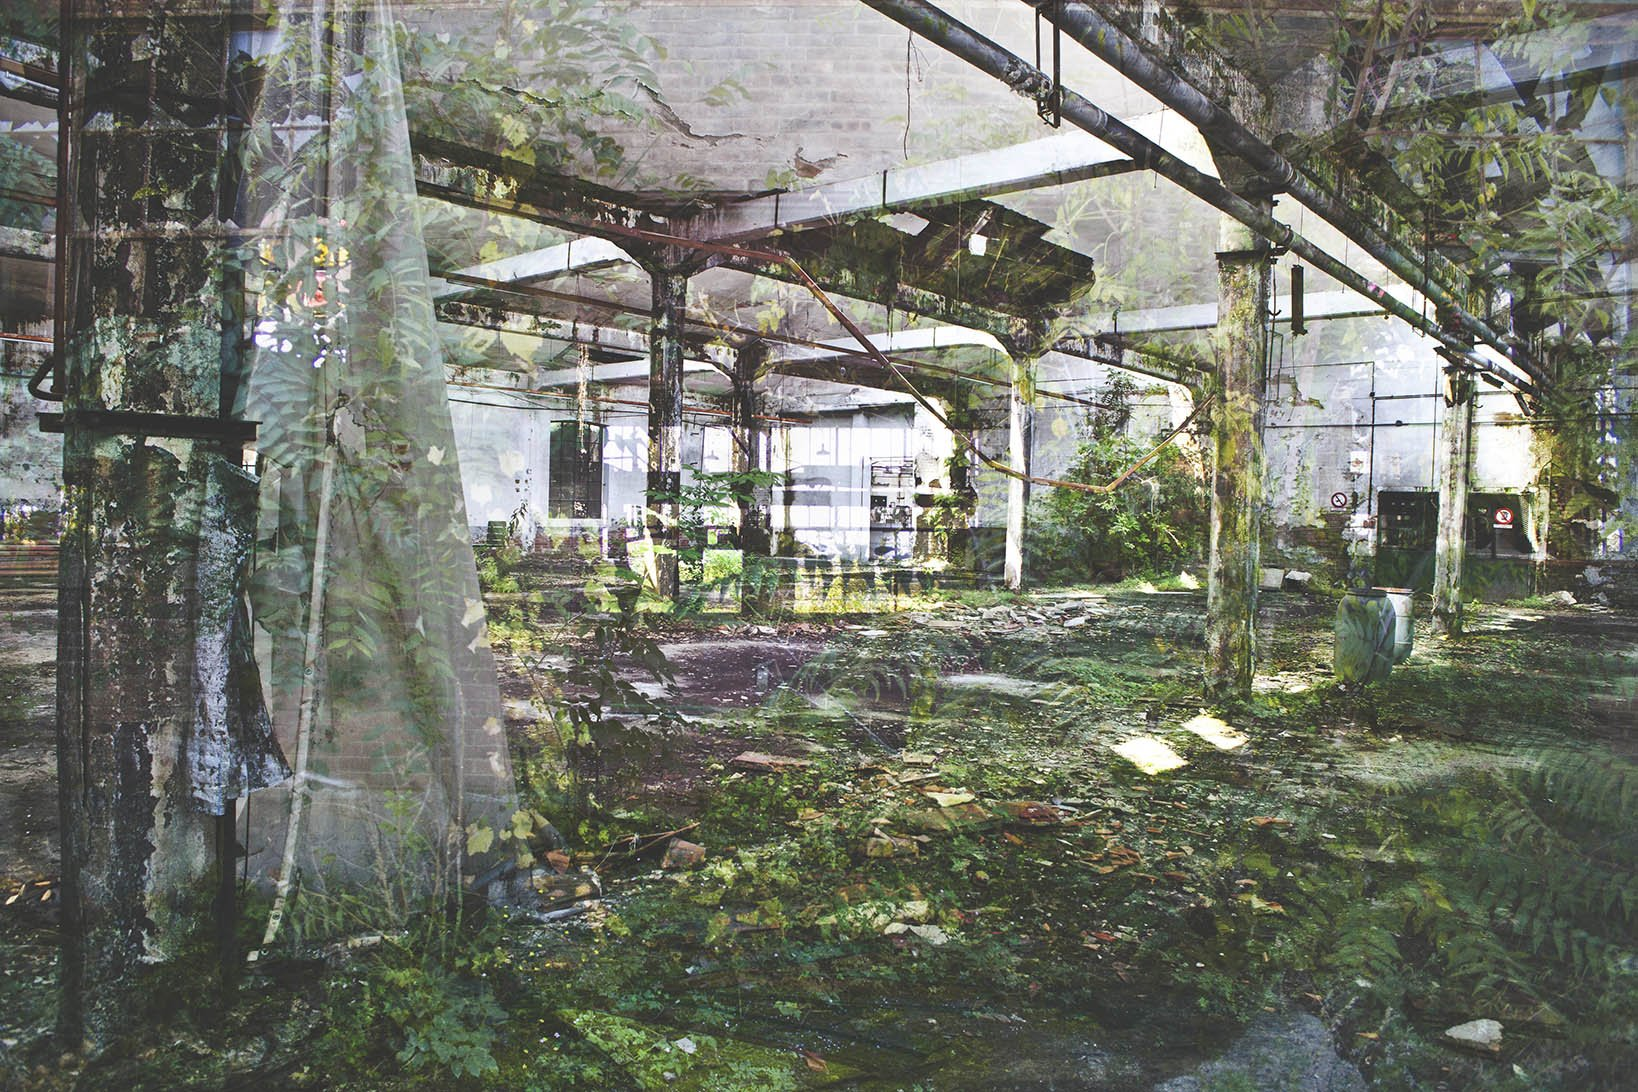 elisabetta riccio - double exposure of the restitution project where you can see AN OLD FACTORY abandoned in Piedmont, Italy, once a producer of cotton handkerchiefs